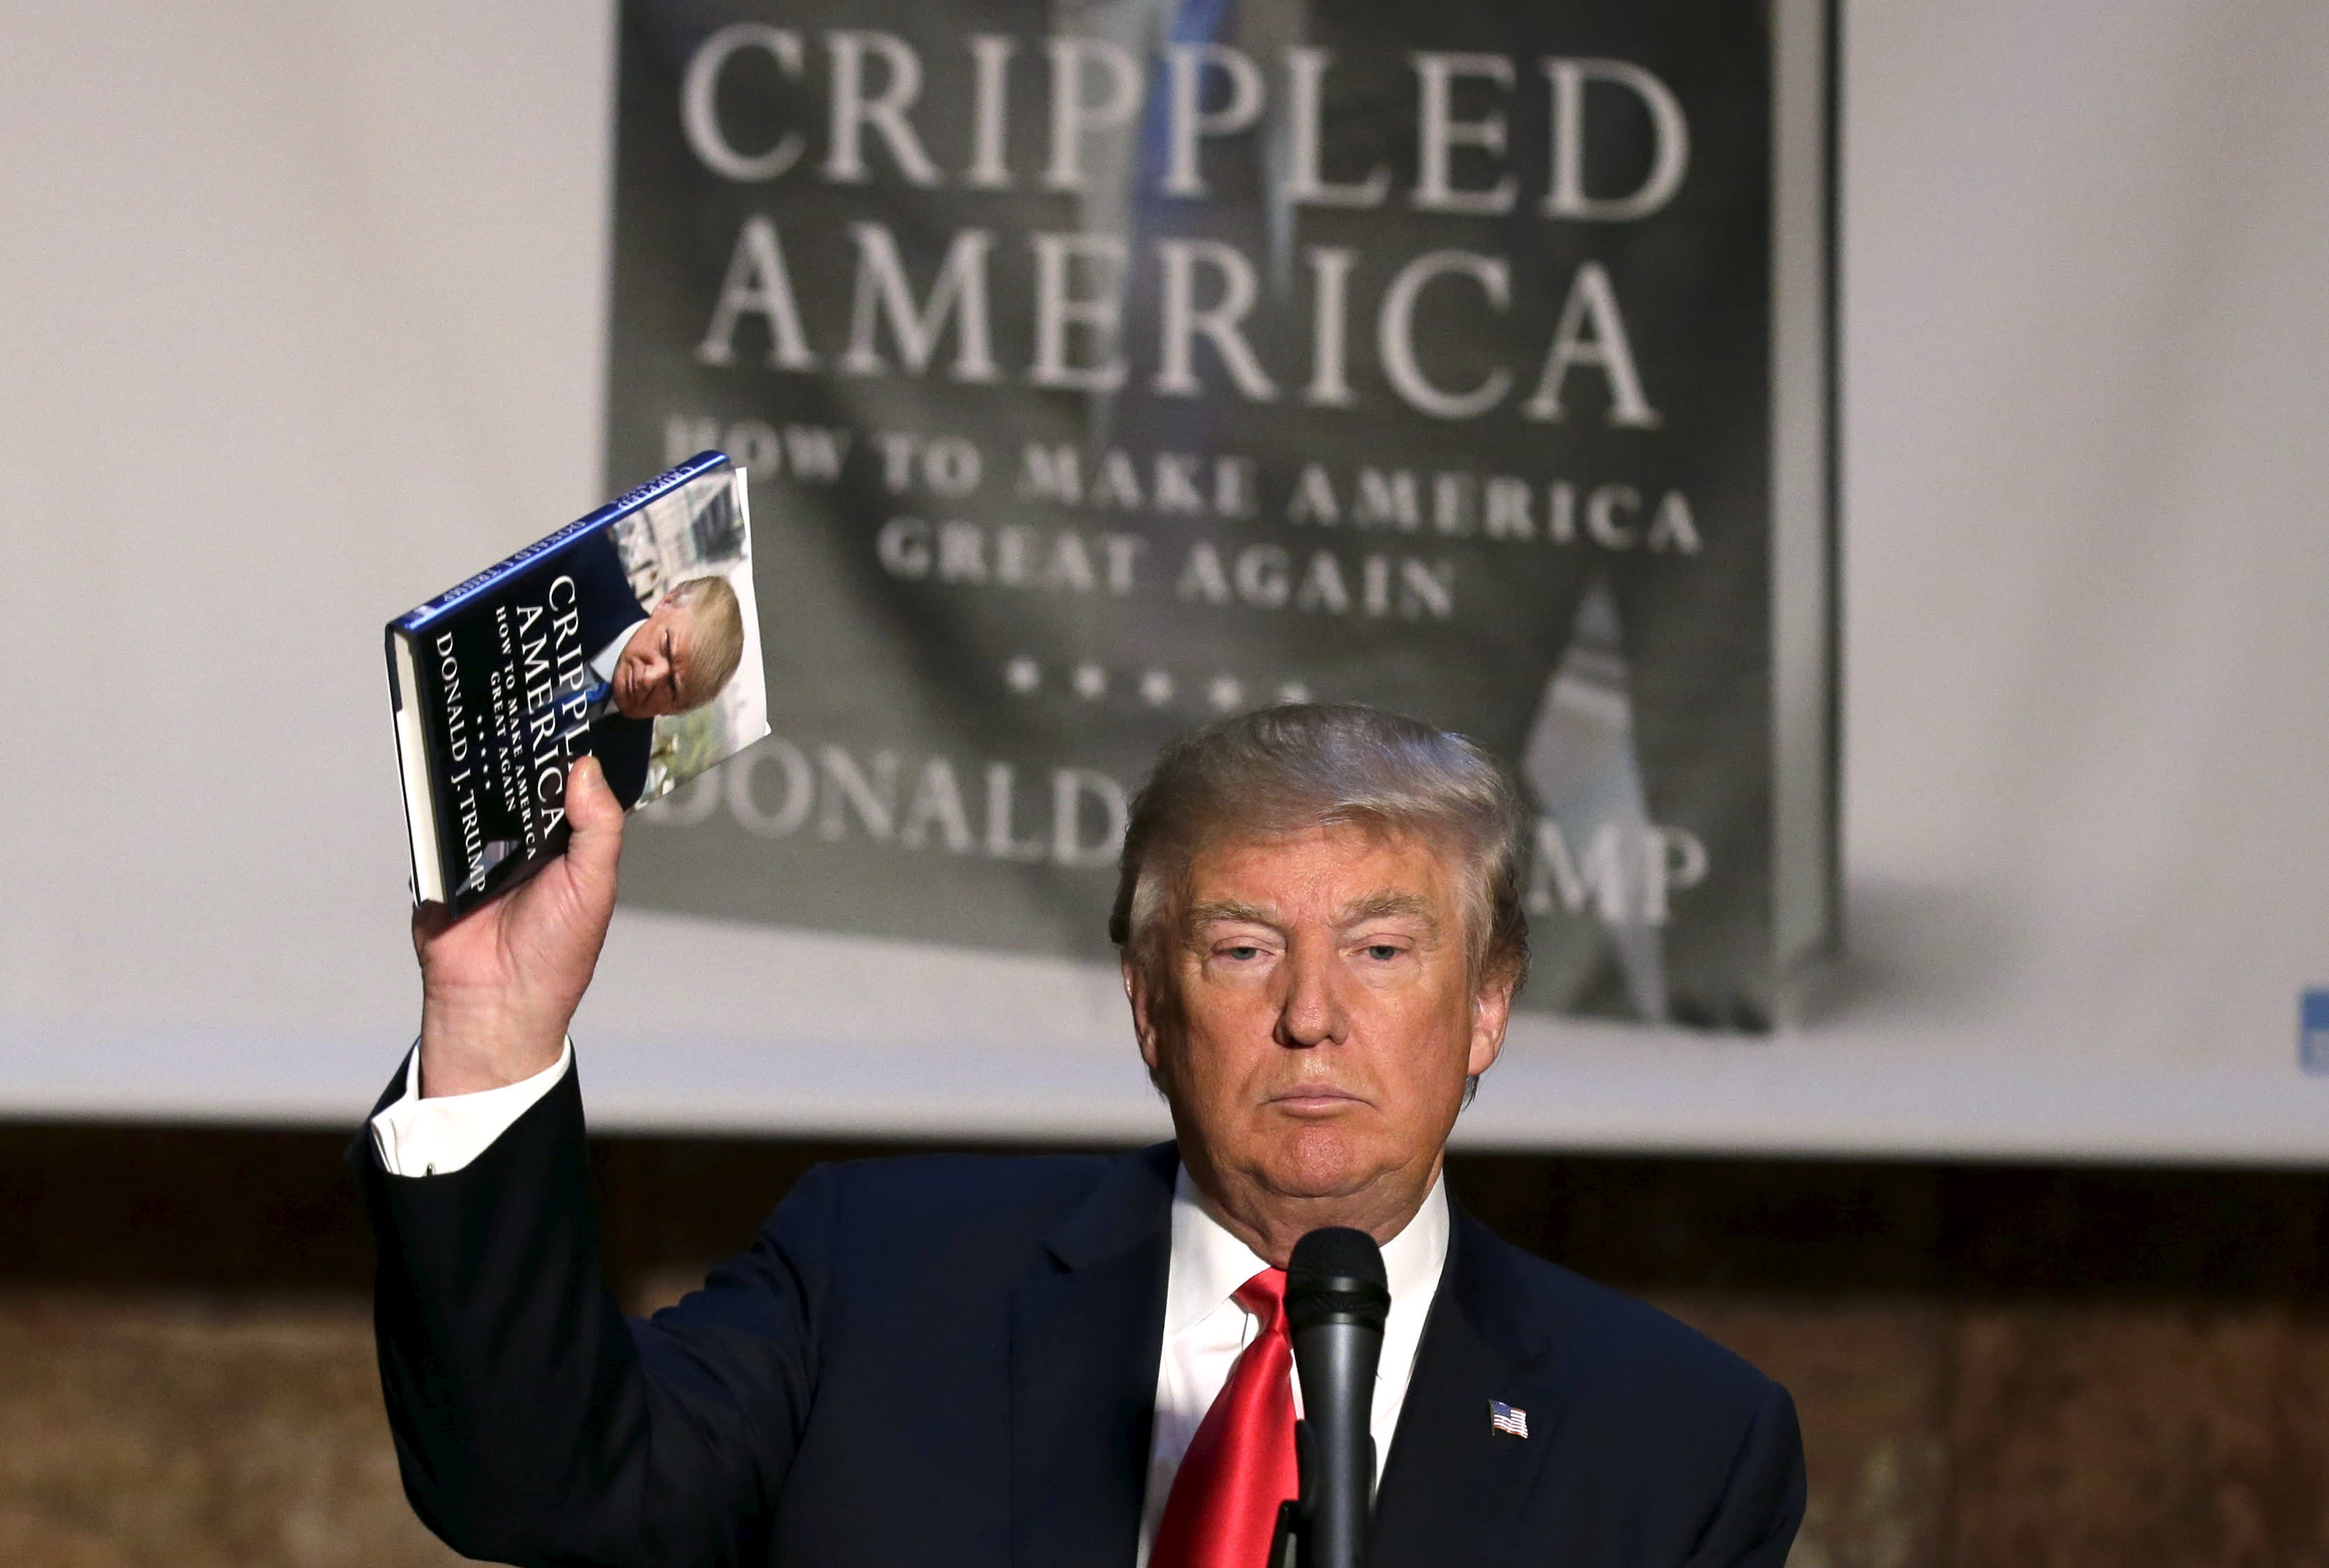 trump donald books president written read doesn become rich holds america candidates presidential selling brendan reuters mcdermid theatlantic lead atlantic